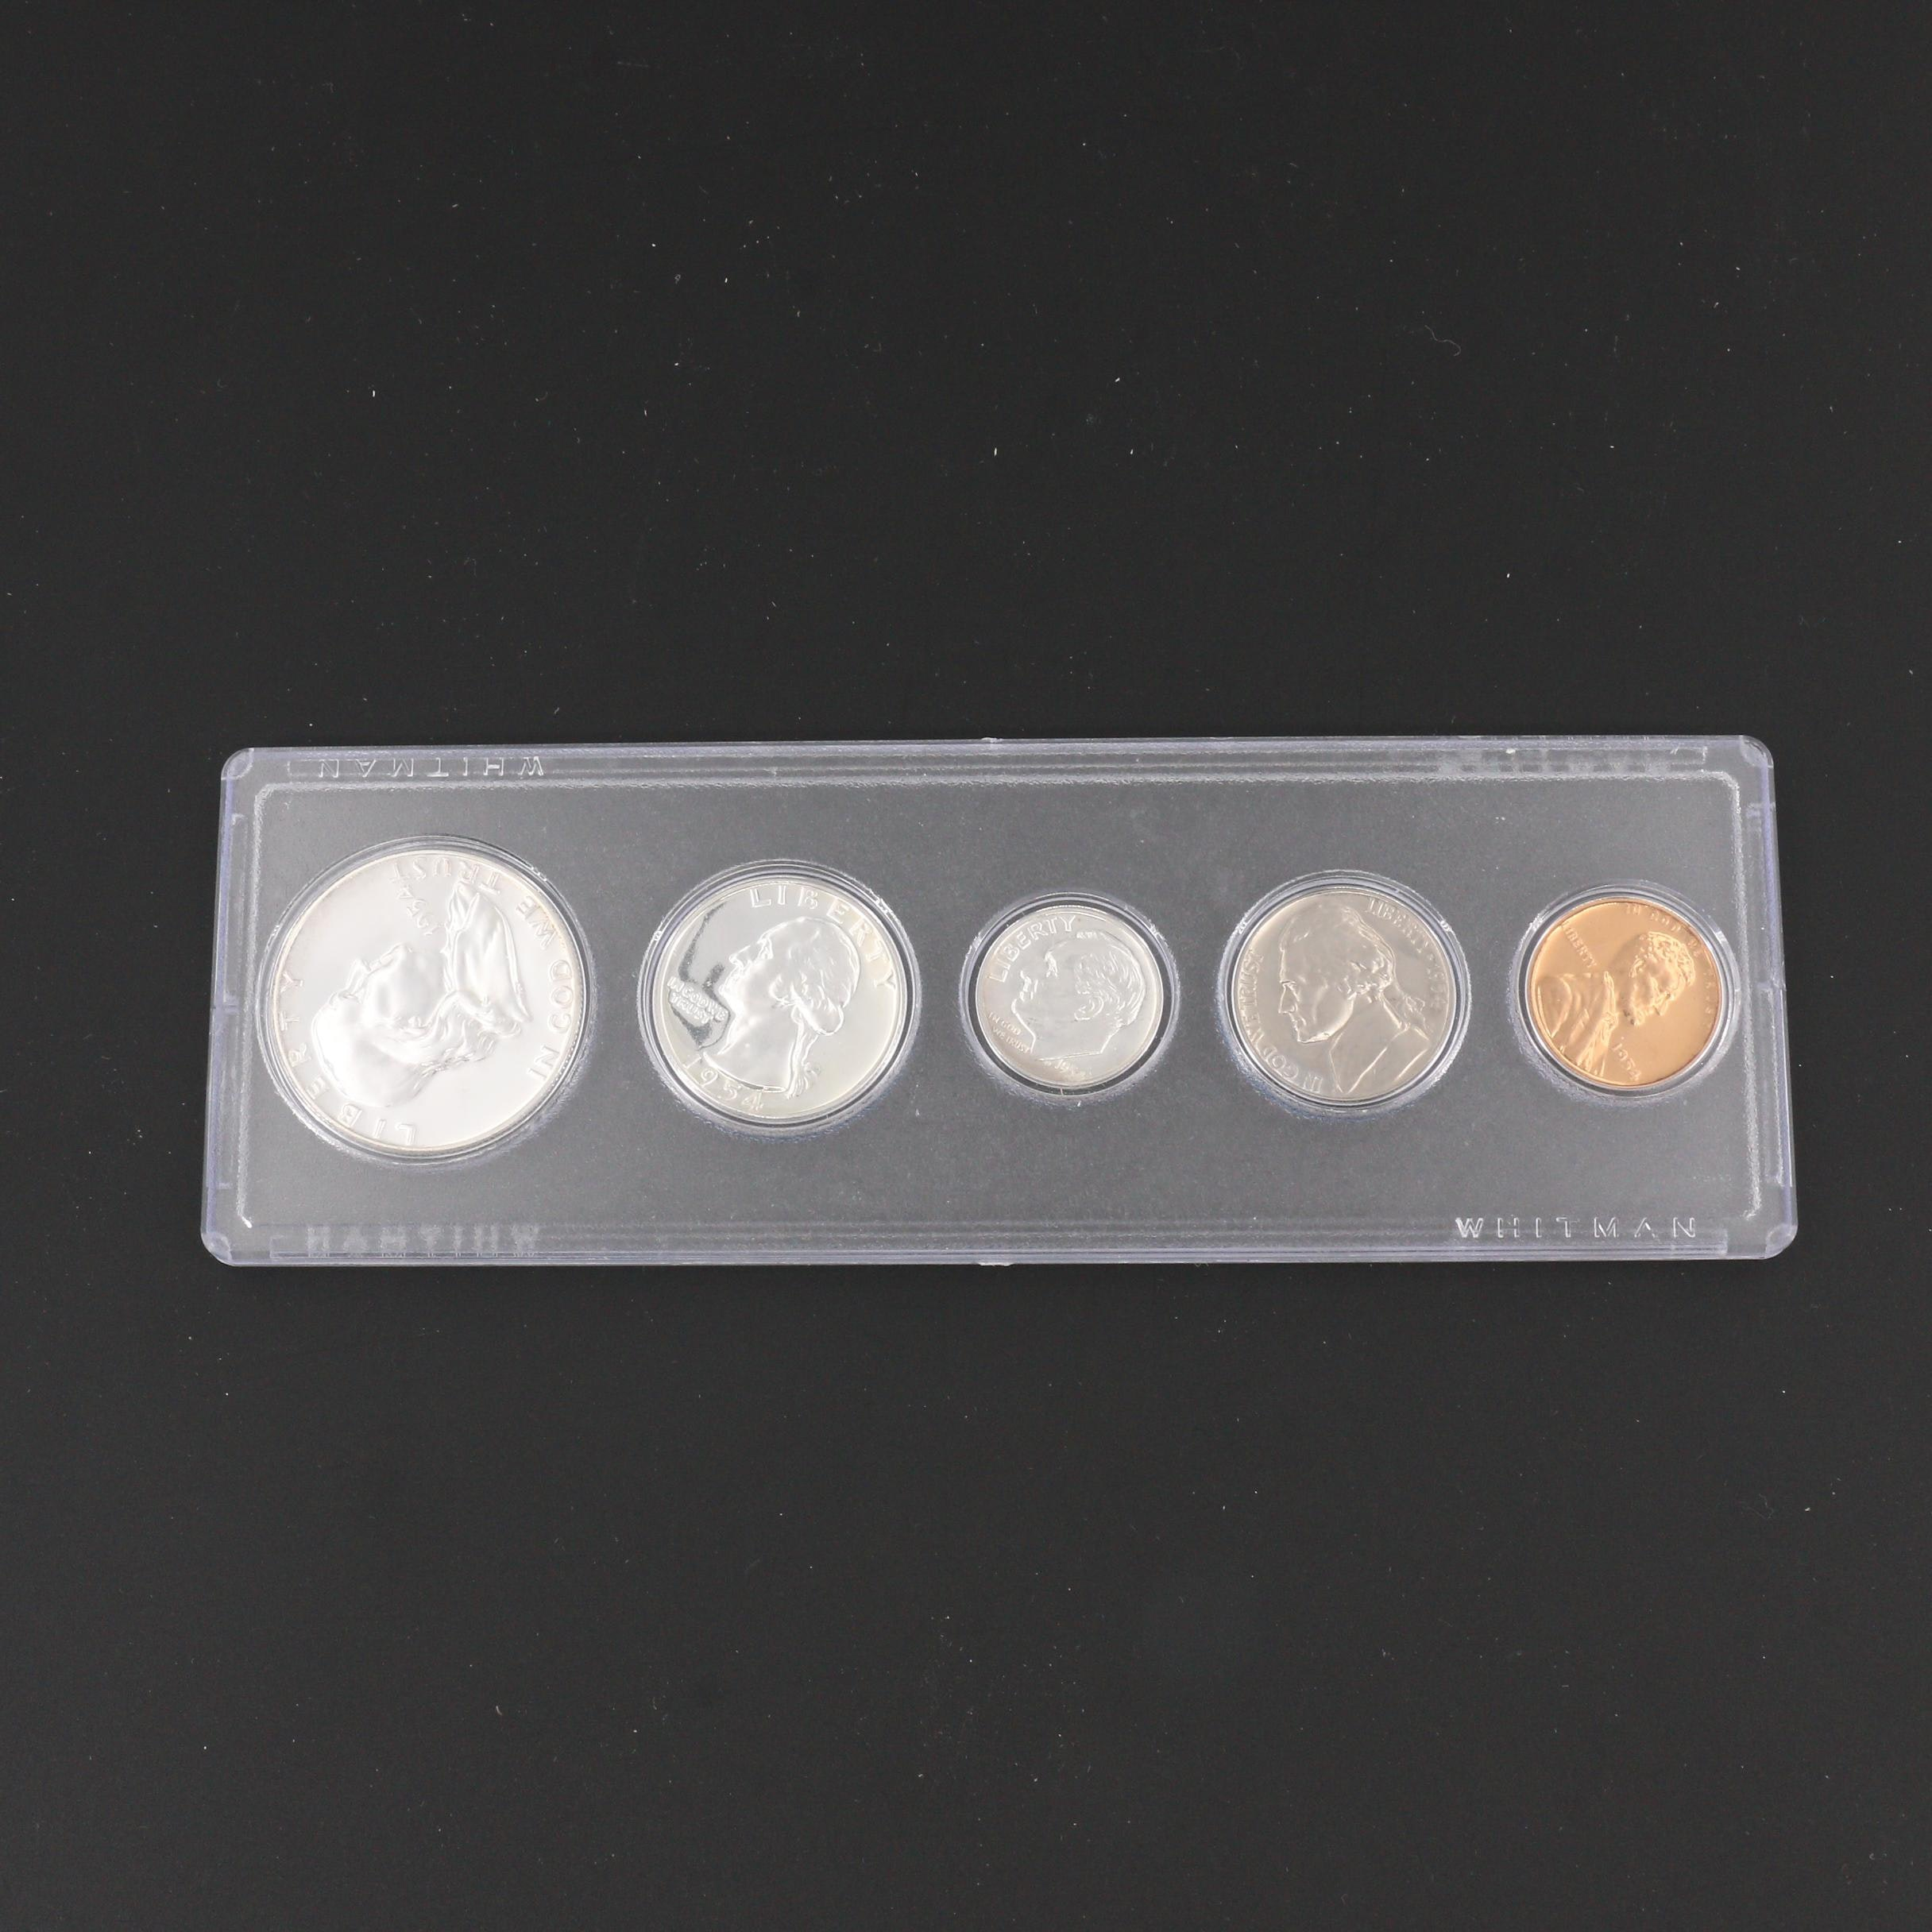 1954 U.S. Type Coin Proof Set